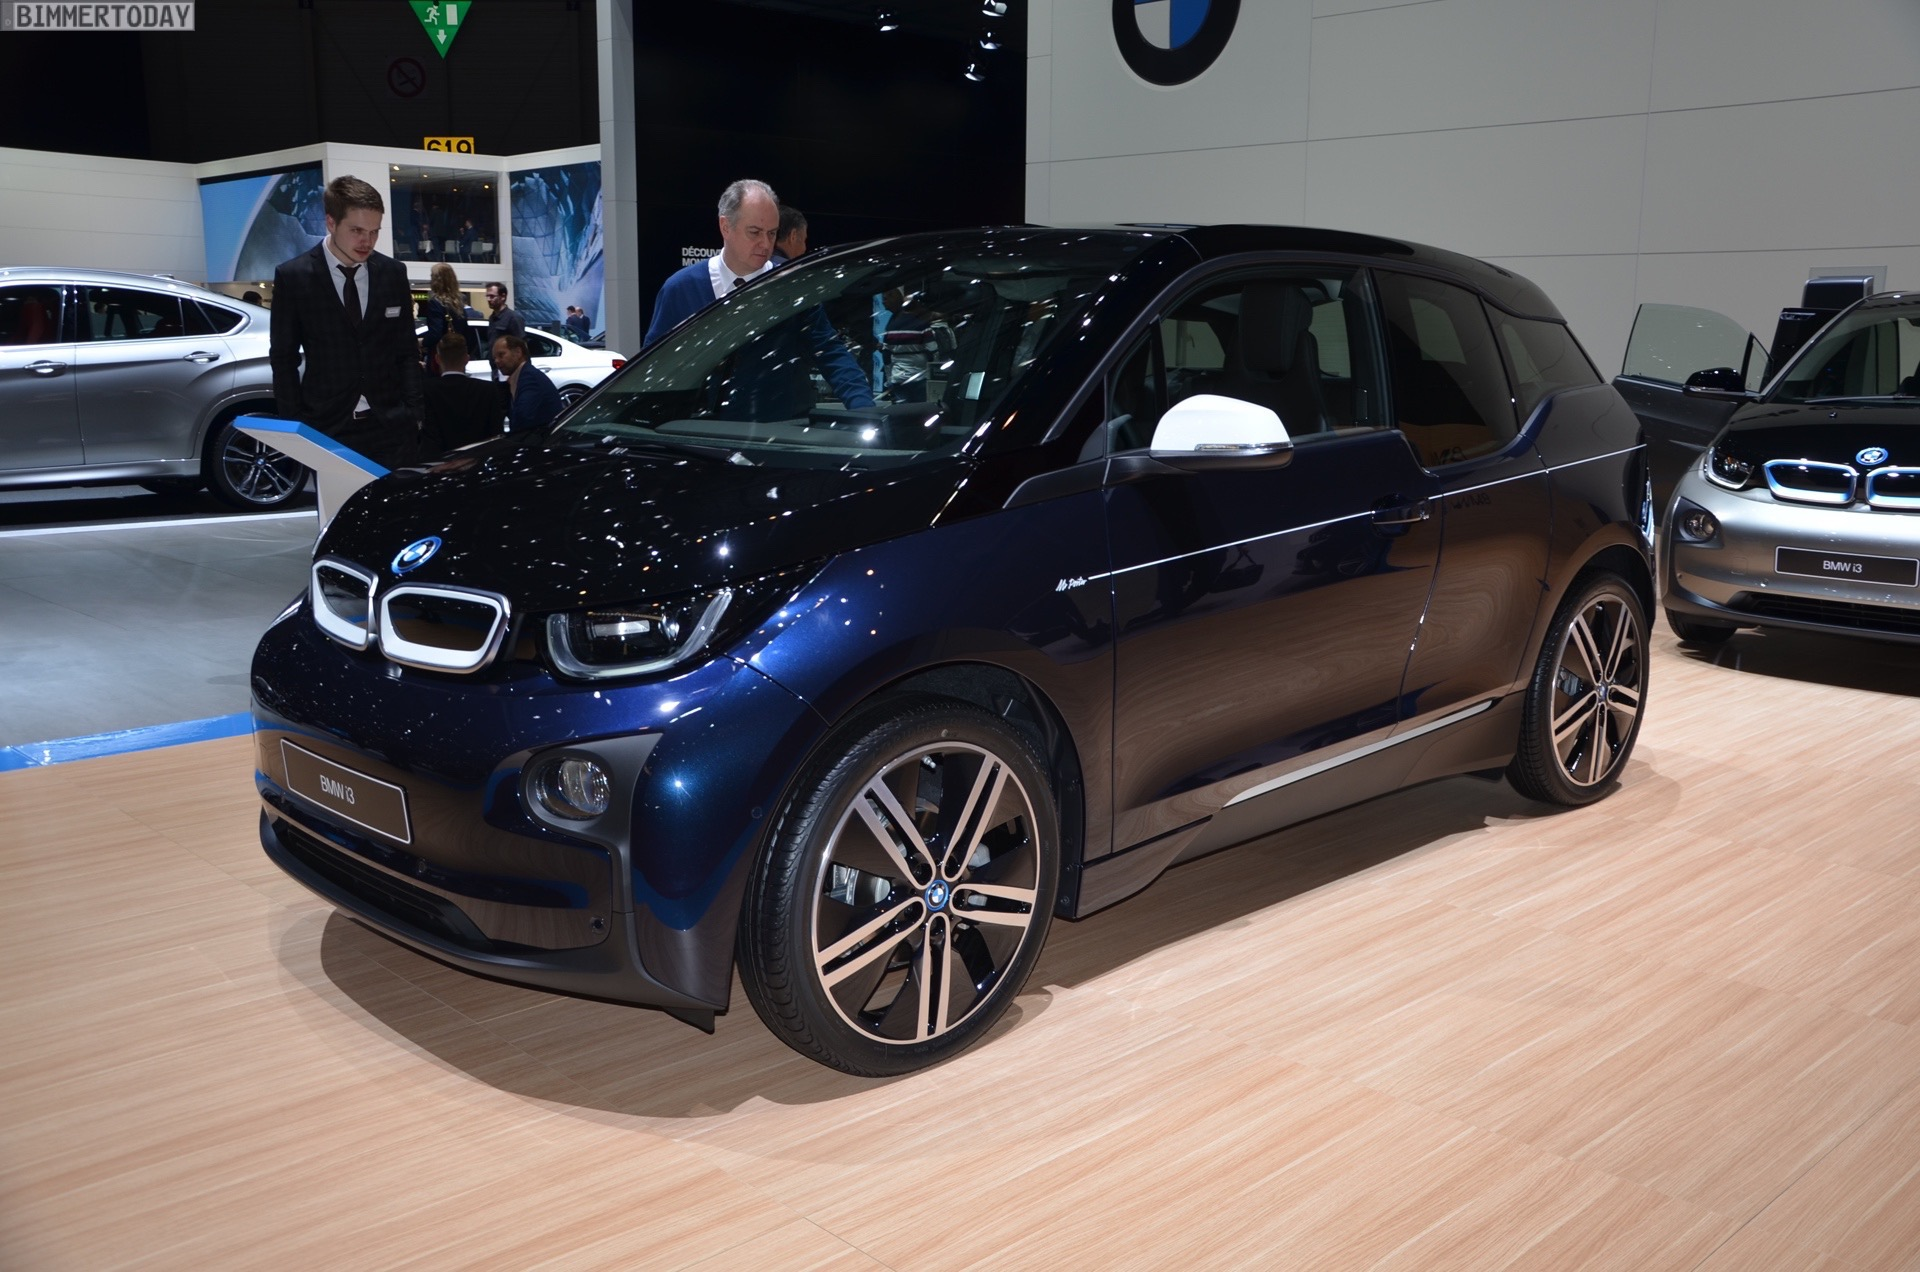 BMW i3 MR PORTER Design Limited Edition 2016 Genf Autosalon Live 01